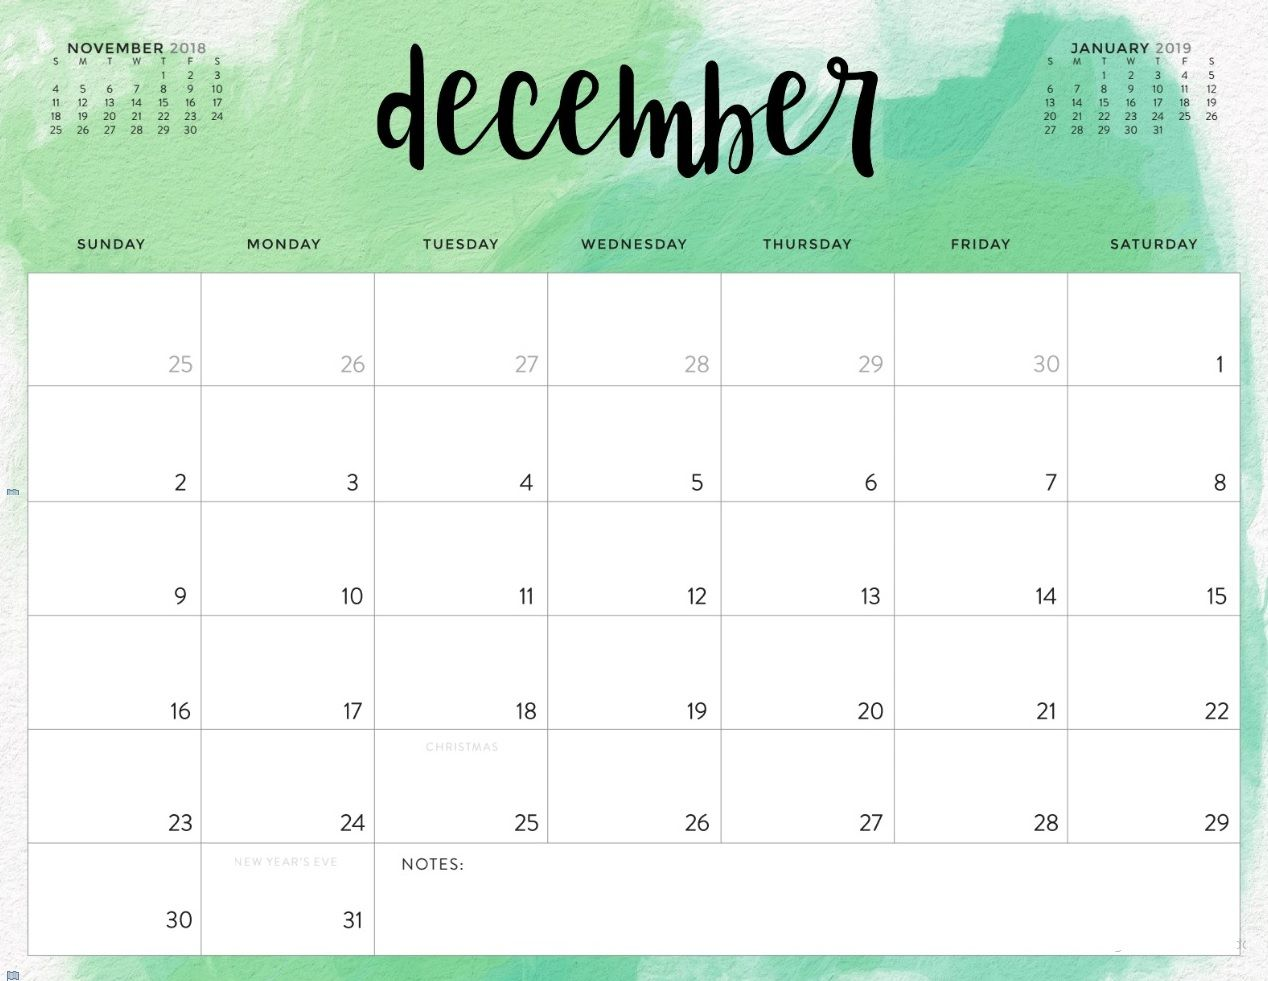 graphic regarding Calendar December Printable named Printable December 2018 Calendar Calendar 2018 December